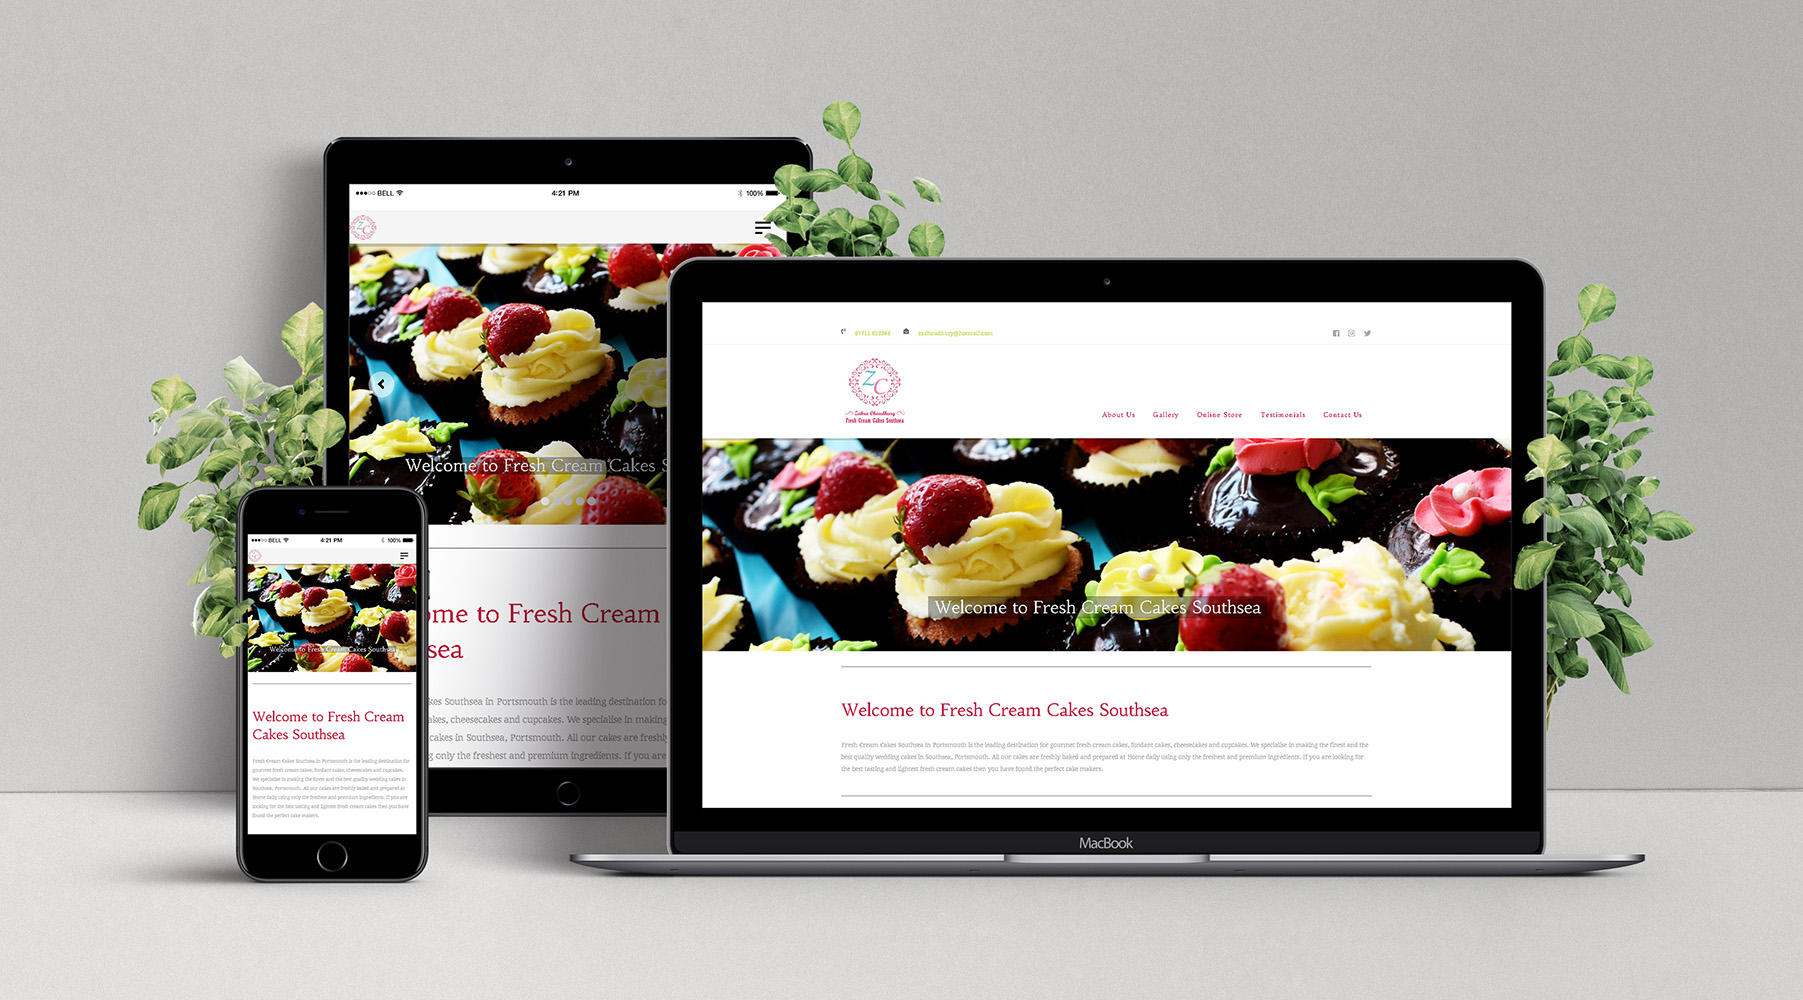 Fresh Cream Cakes Southsea: Responsive Web Design